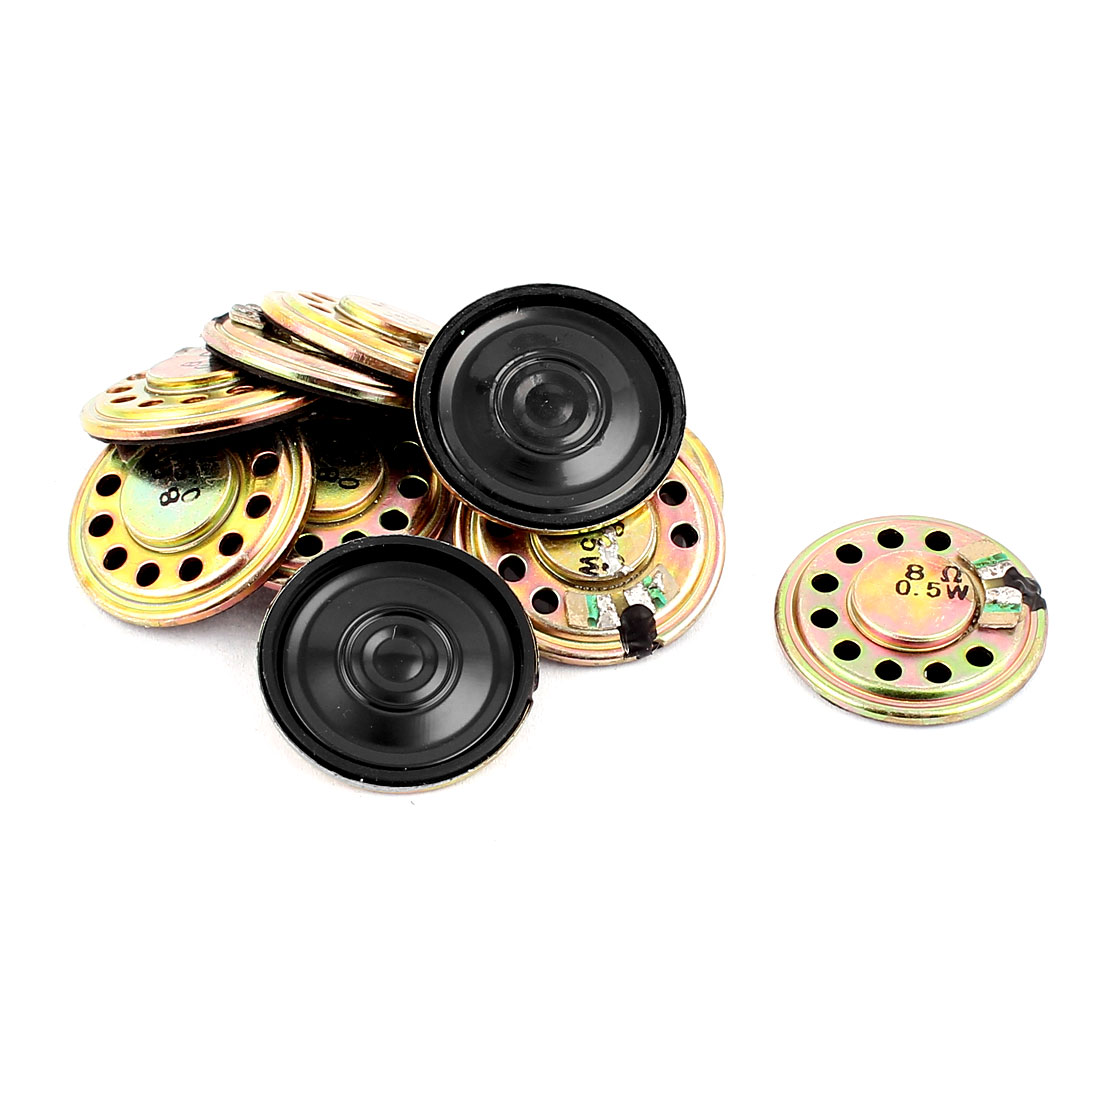 0.5W 28mm Diameter 8 Ohm Internal Mini Magnet Speaker Loudspeaker 10Pcs